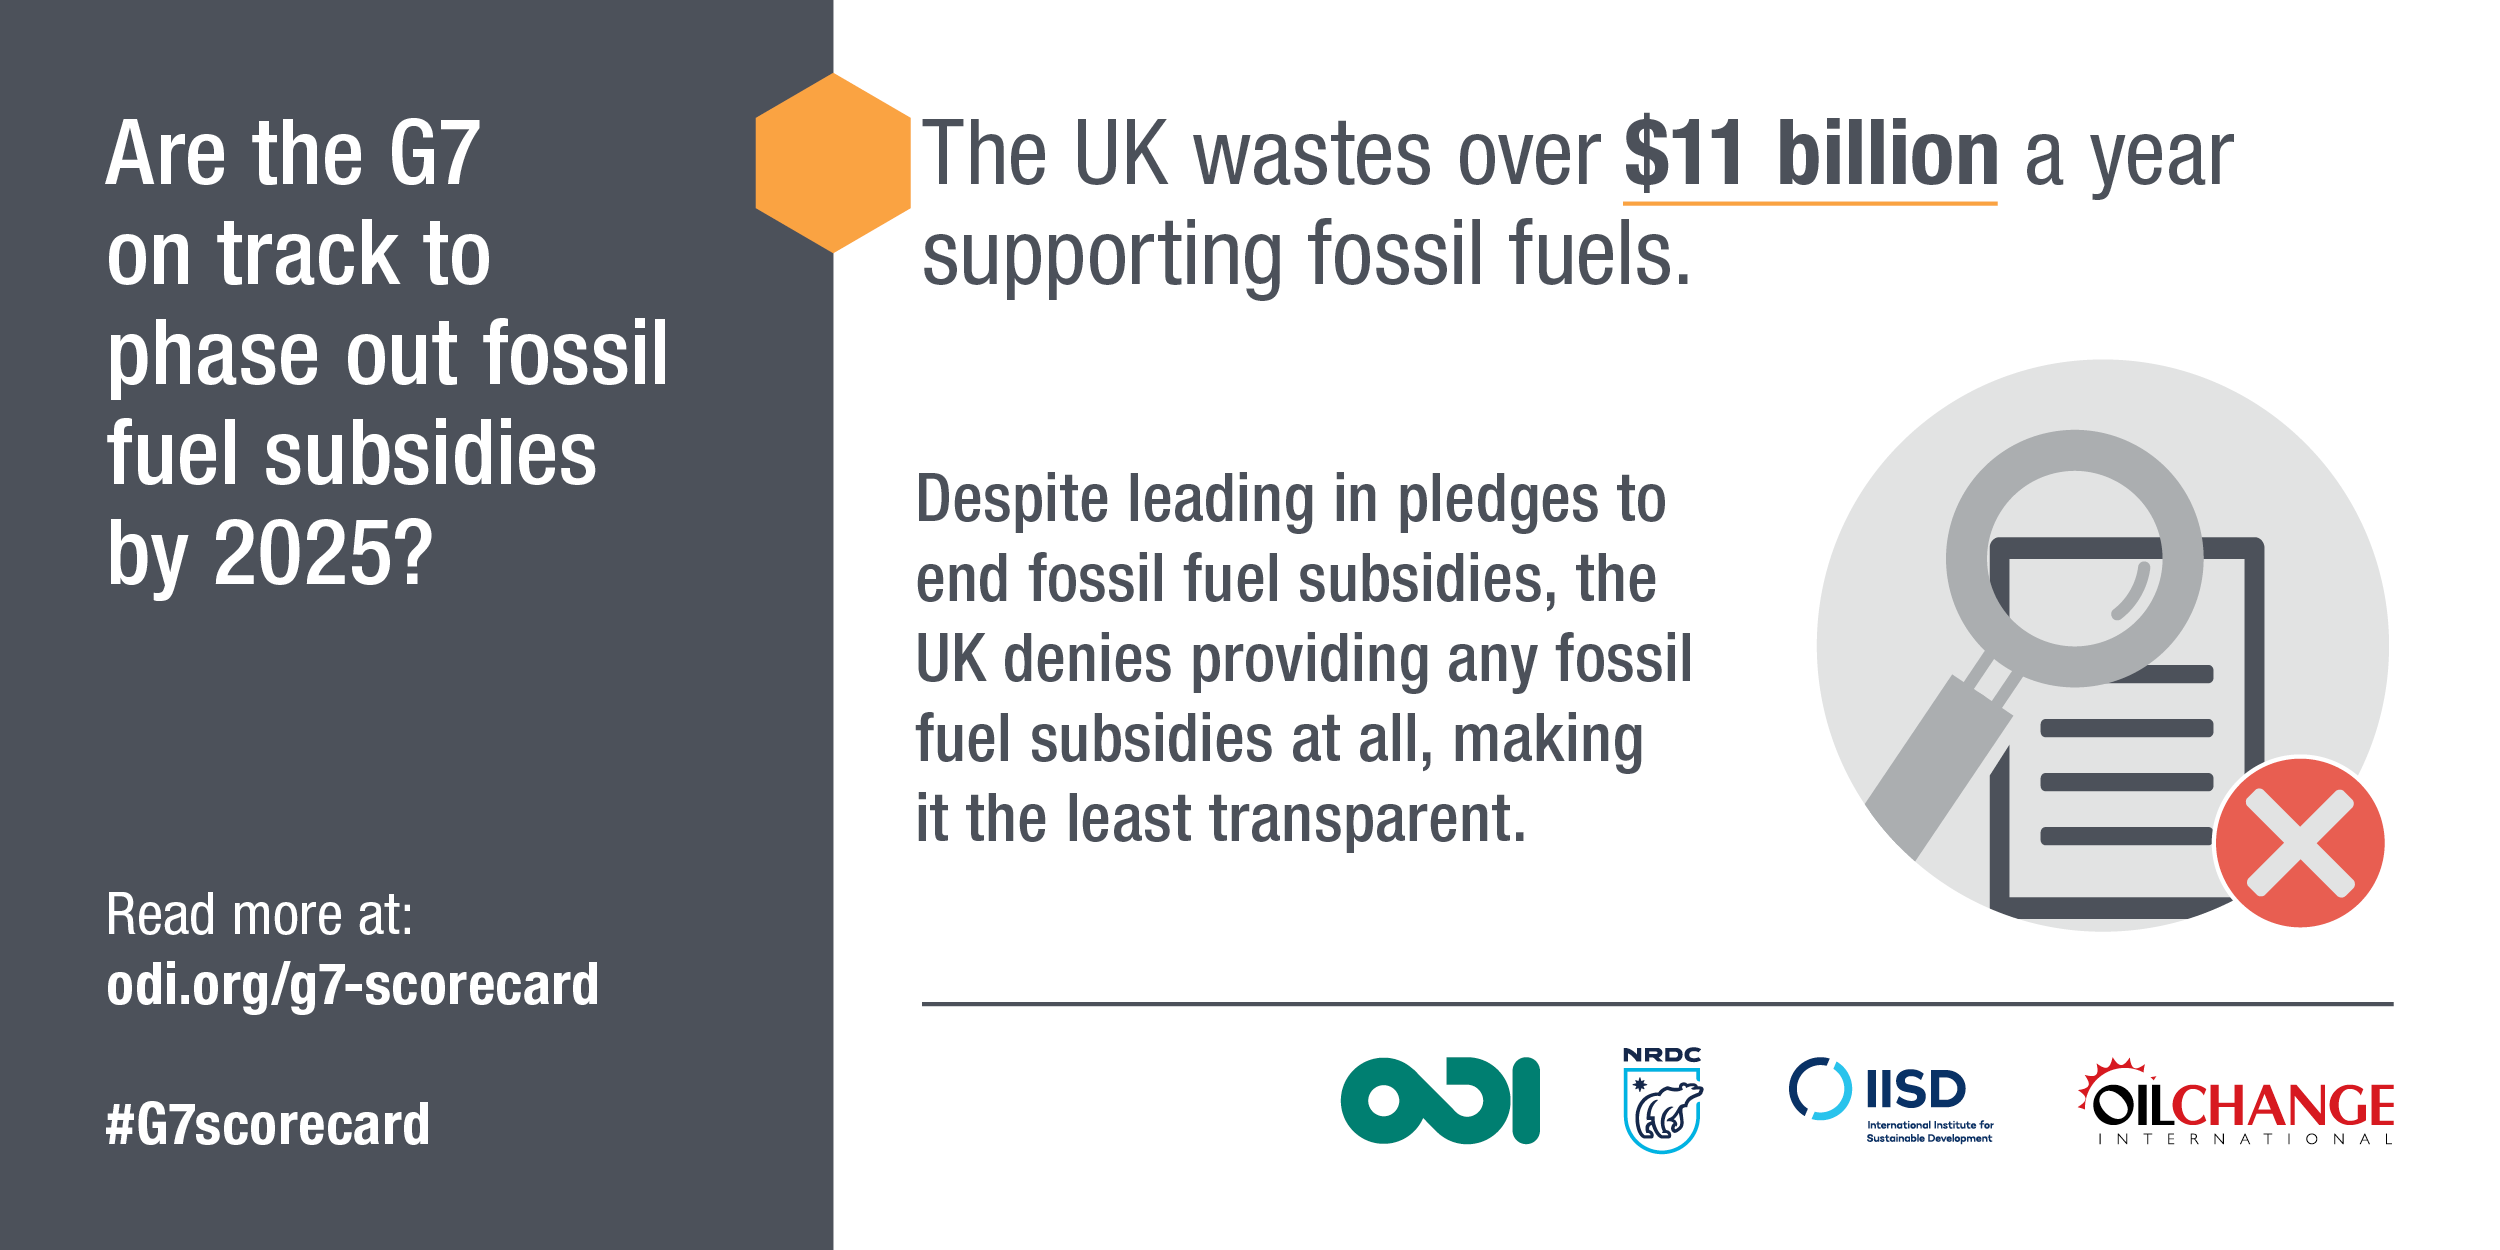 The UK wastes over $11 billion a year supporting fossil fuels. Image: ODI